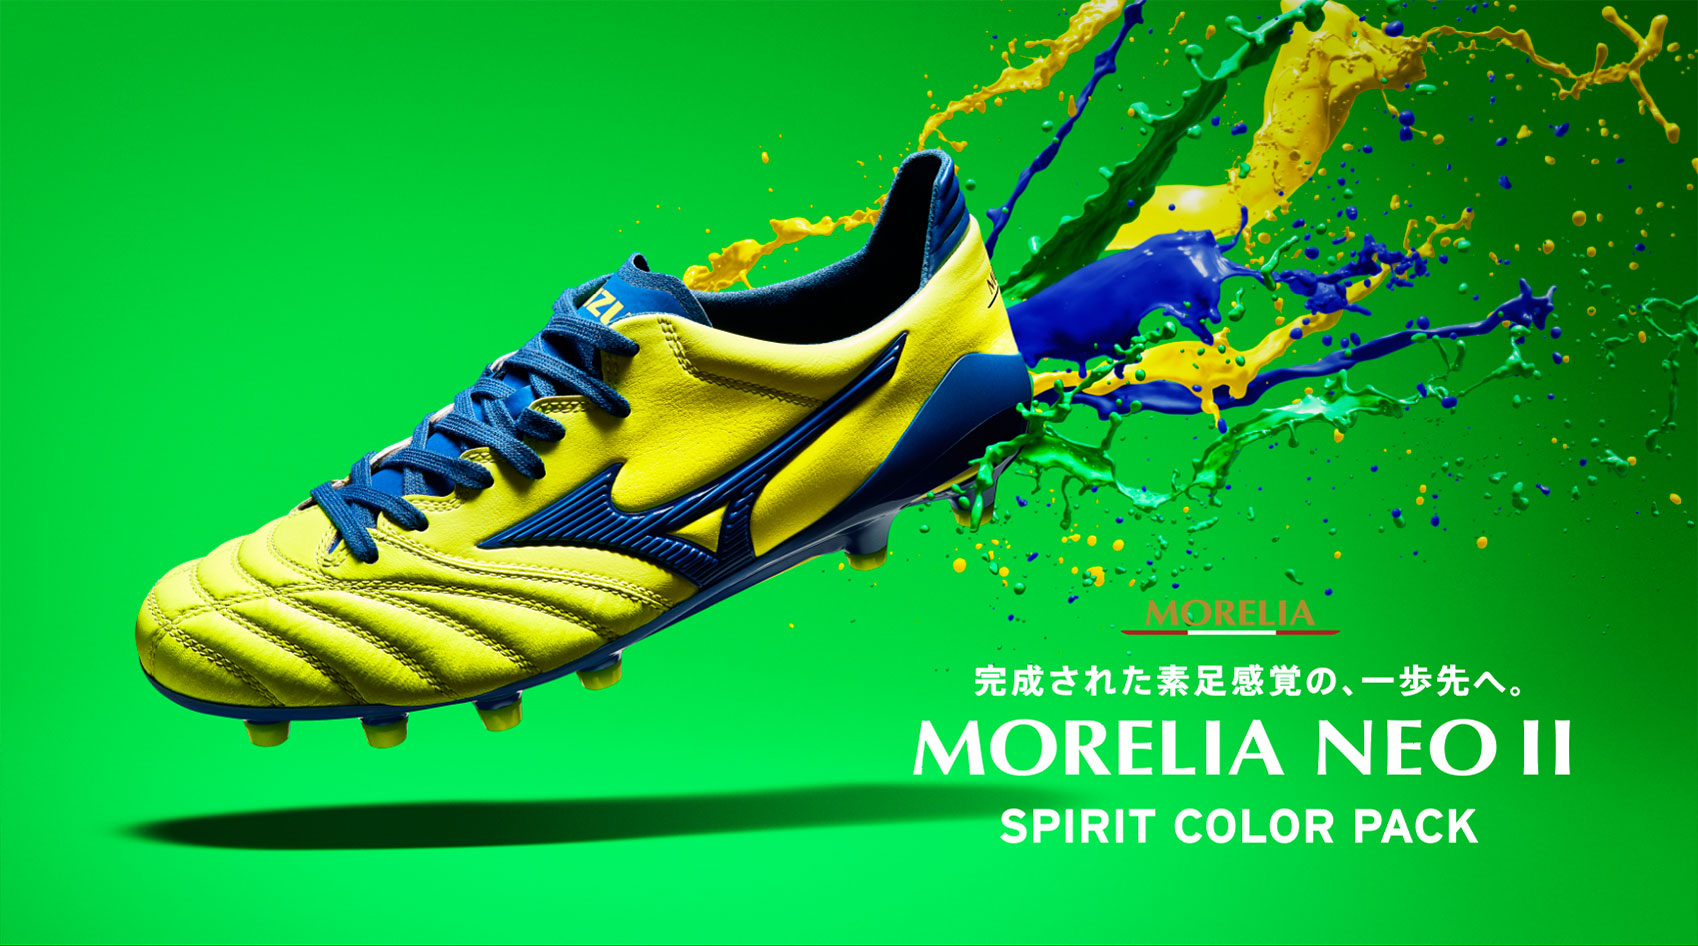 MORELIA NEO Ⅱ(モレリア ネオ II)NEW COLOR【 SPIRIT COLOR PACK 】デビュー